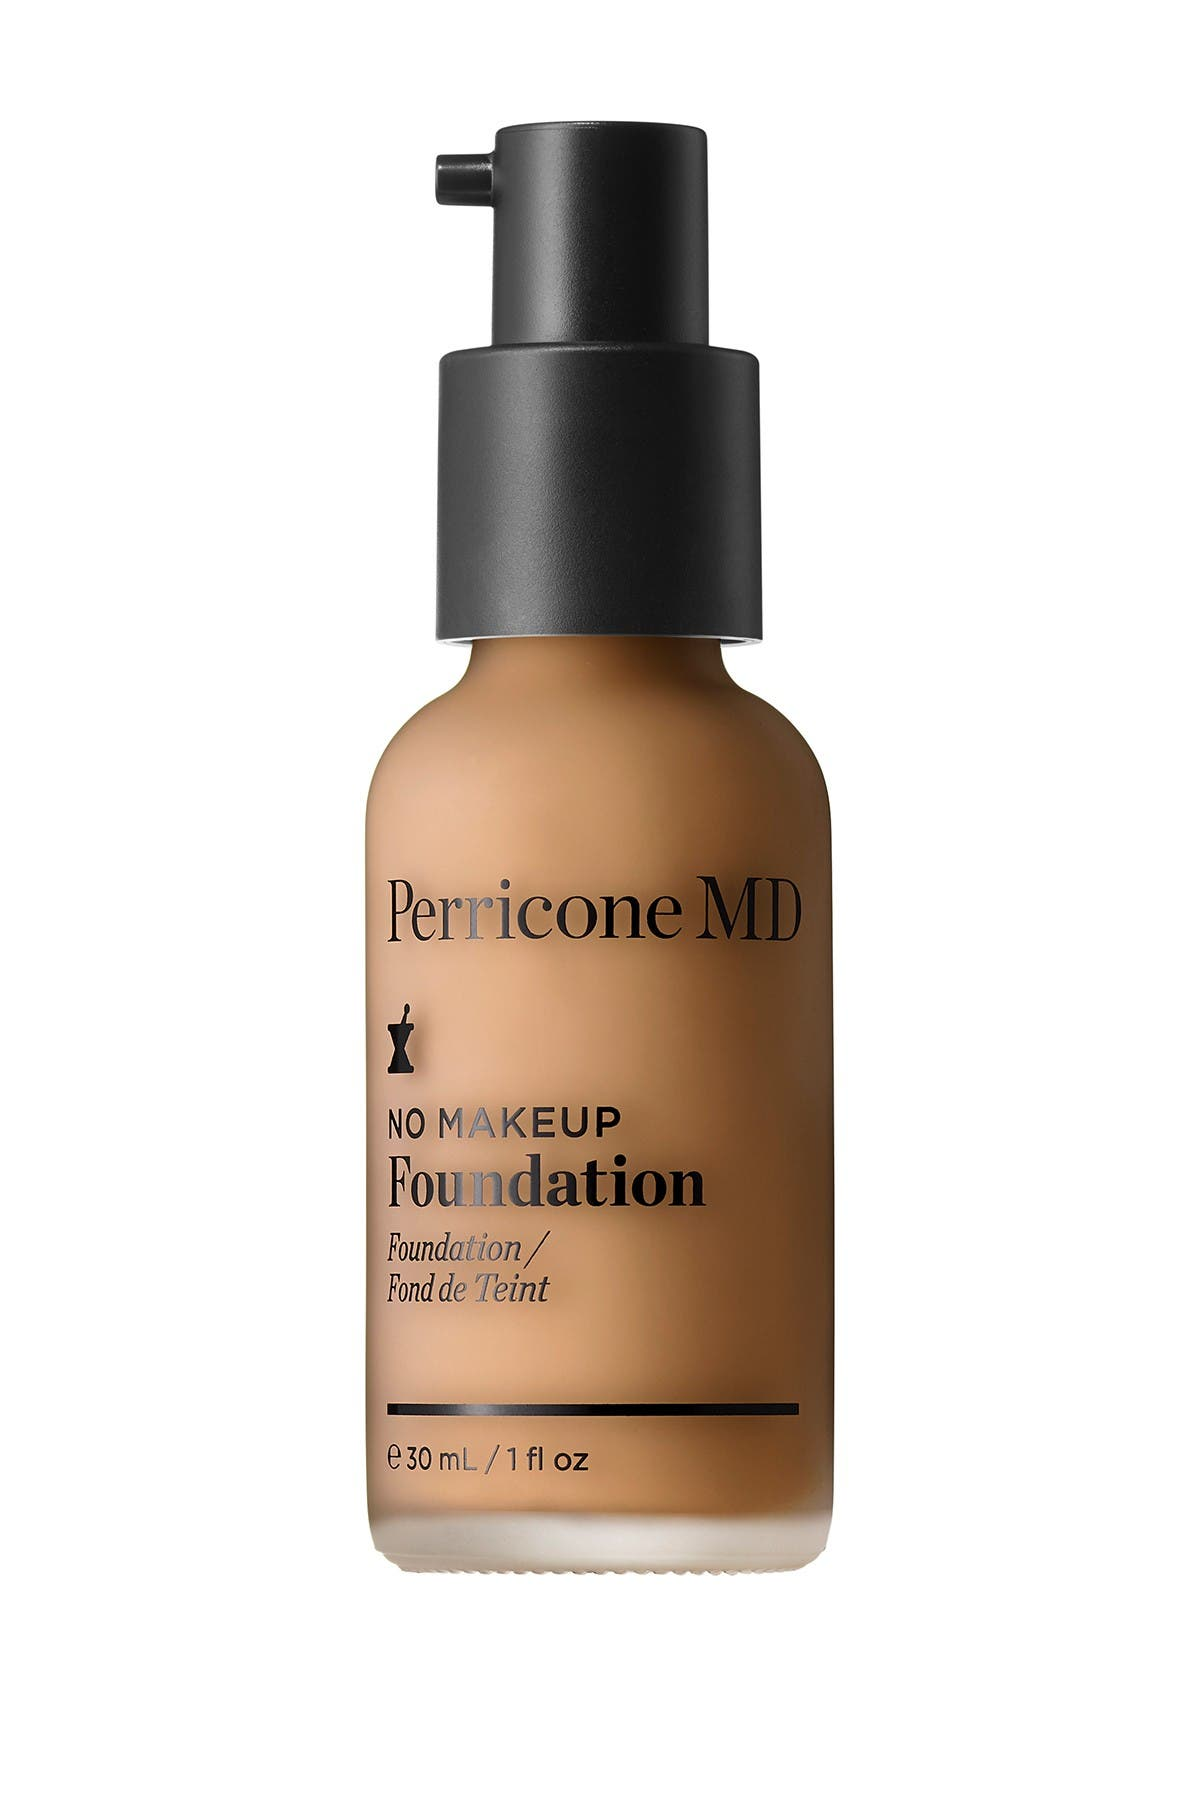 Image of Perricone MD No Makeup Foundation - Tan